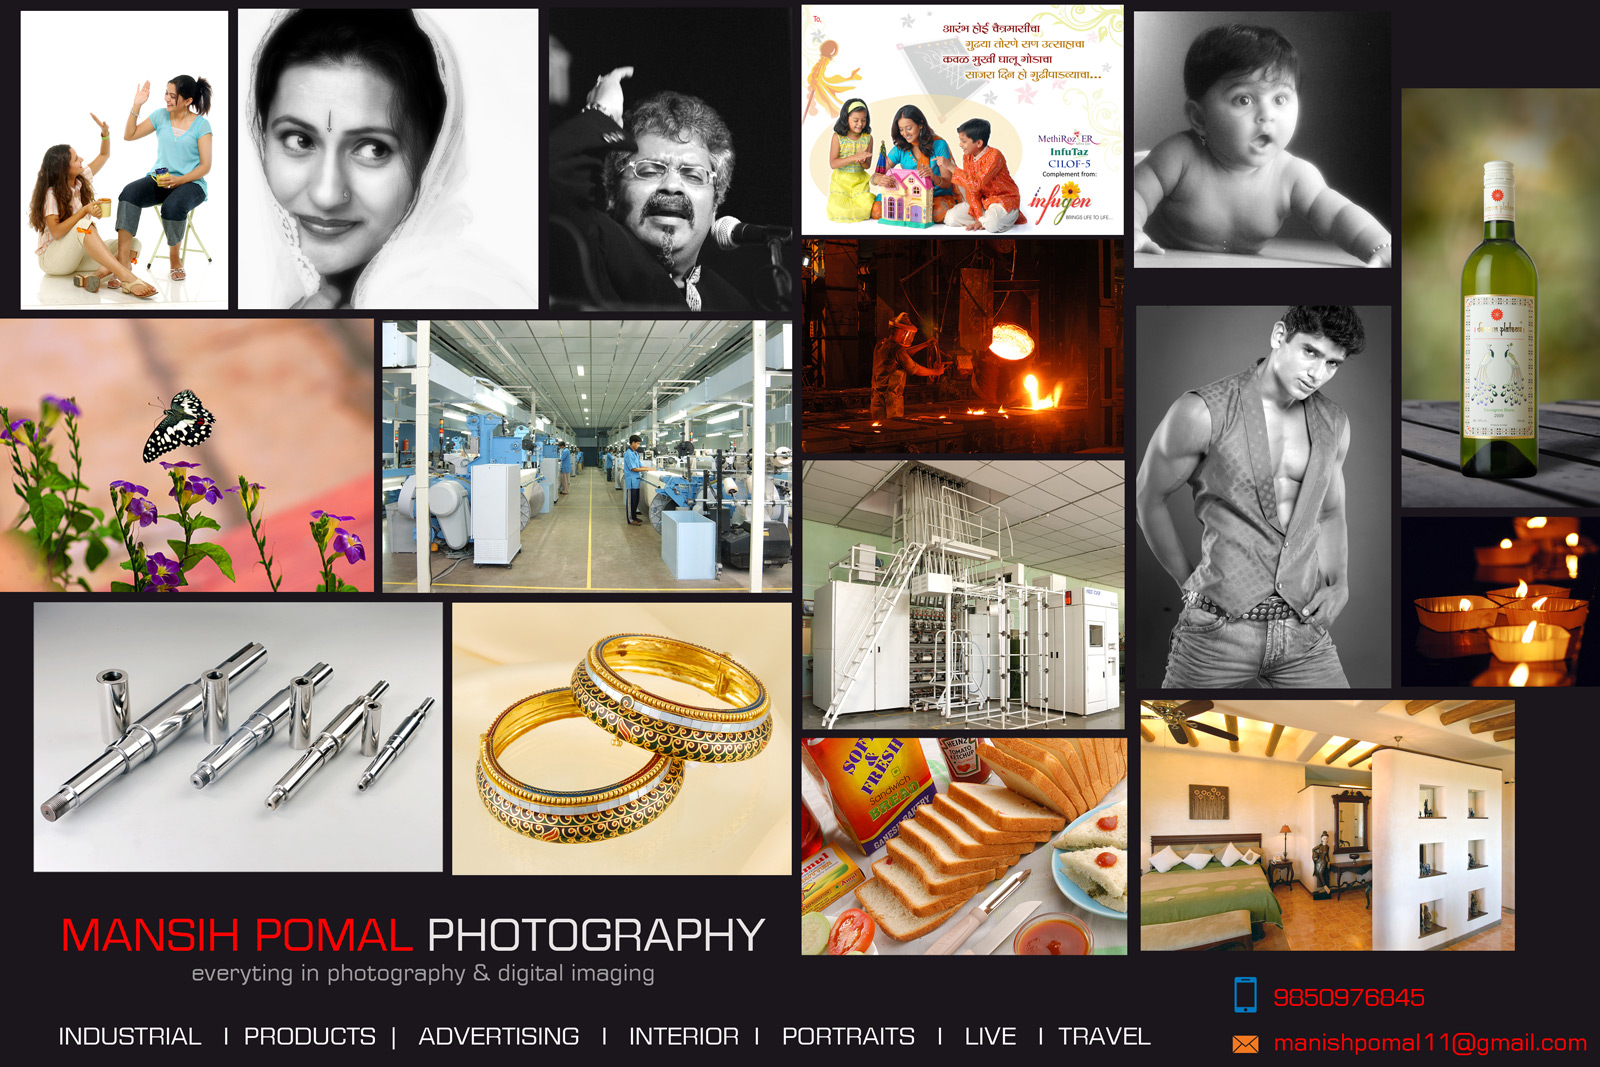 Manish Pomal Photography